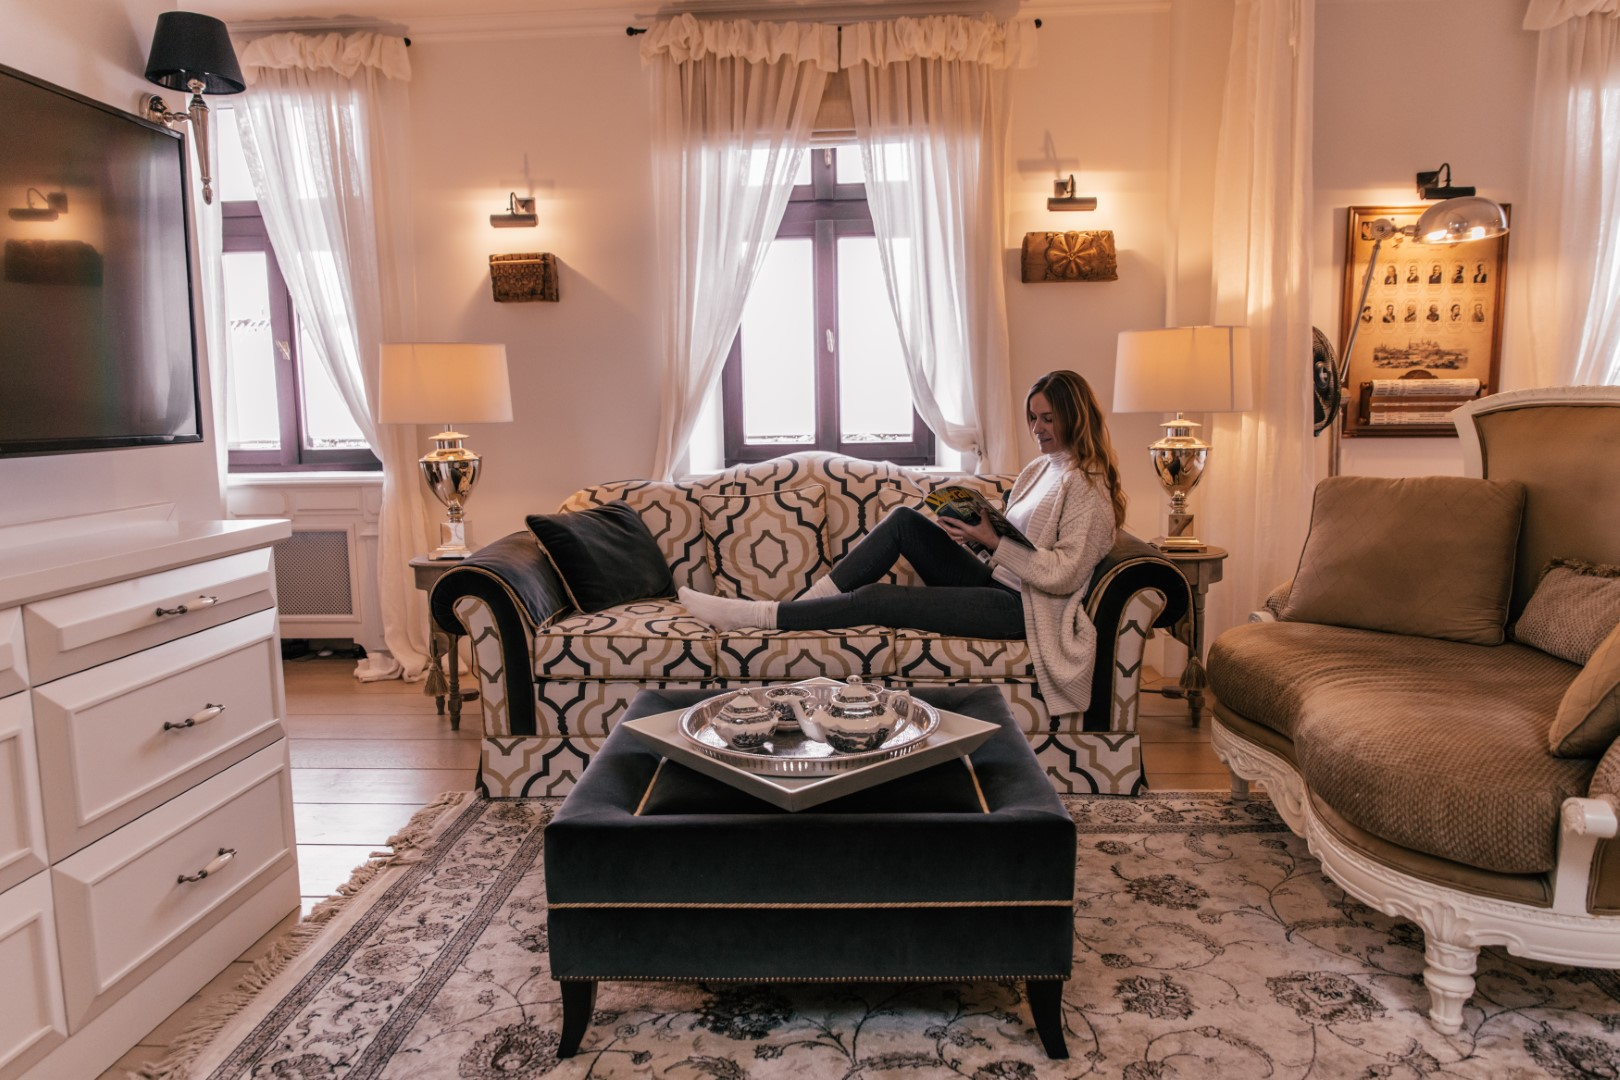 KANONICZA 22: A HOME AWAY FROM HOME IN KRAKOW, POLAND